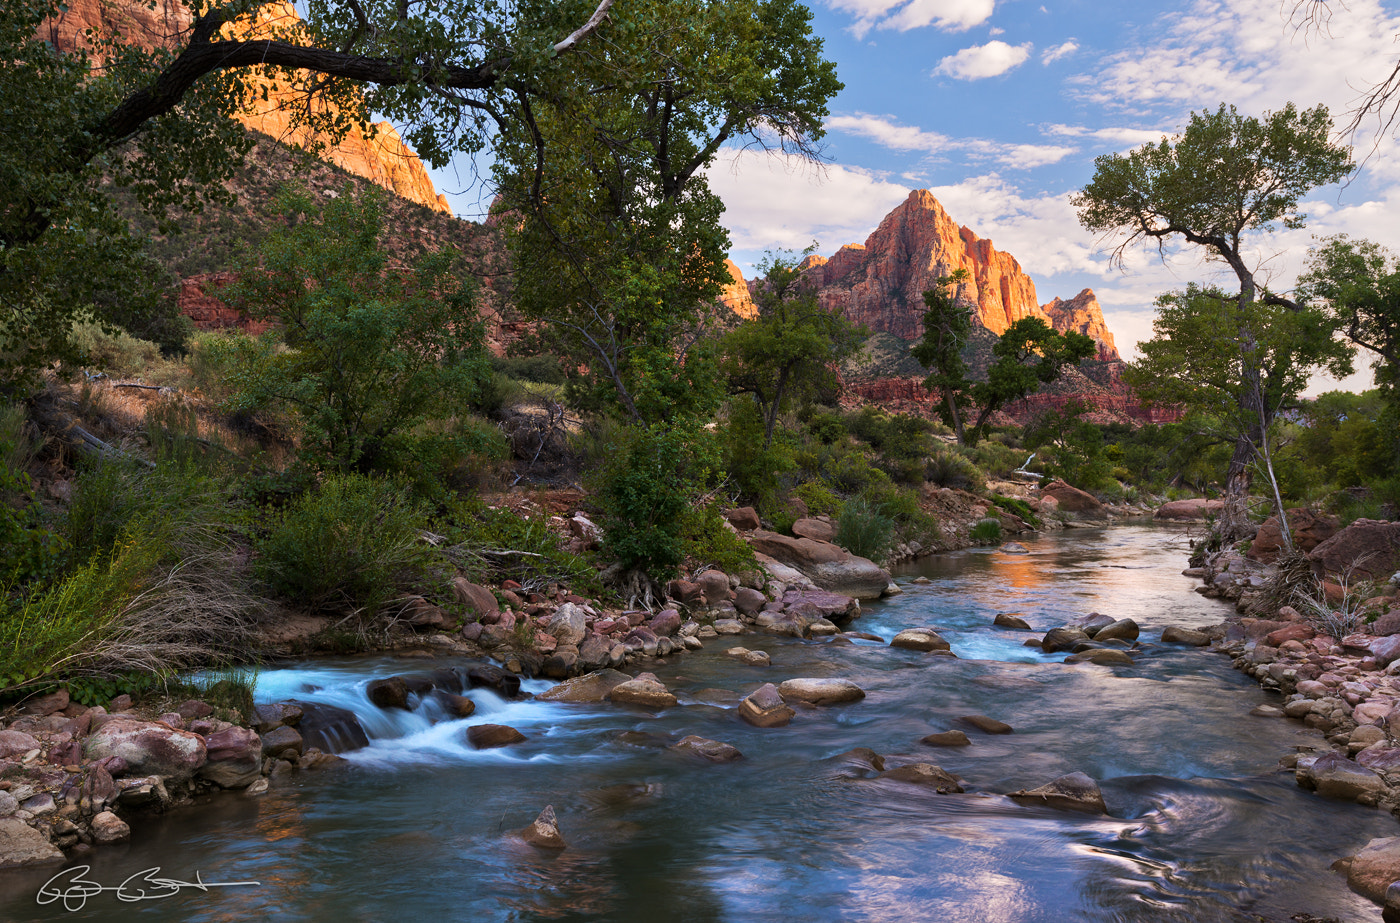 Photograph The Watchman on the Virgin River by Björn Burton on 500px